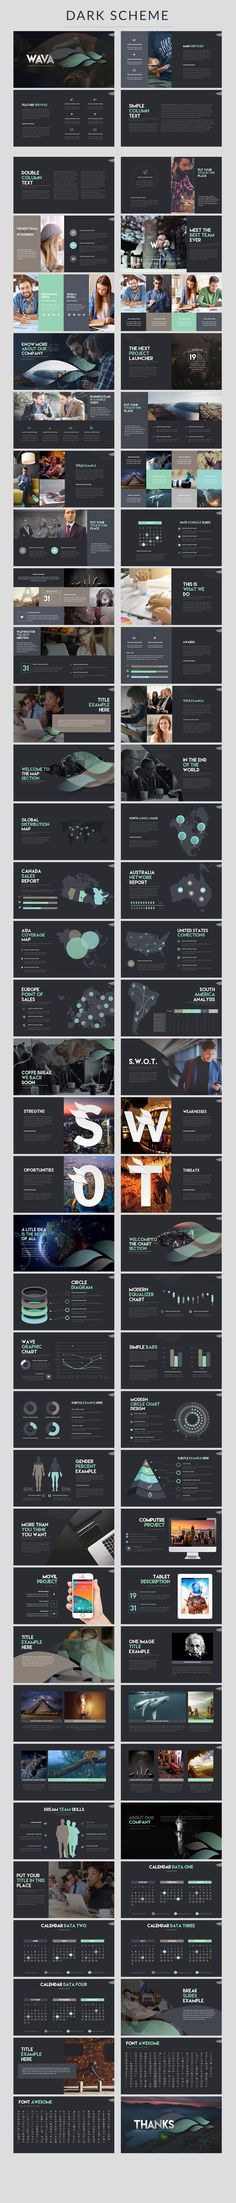 Explore more than presentation templates to use for PowerPoint, Keynote, infographics, pitchdecks, and digital marketing. Powerpoint Design Templates, Creative Powerpoint, Keynote Template, Web Design, Slide Design, Layout Design, Graphic Design, Keynote Design, Brochure Design